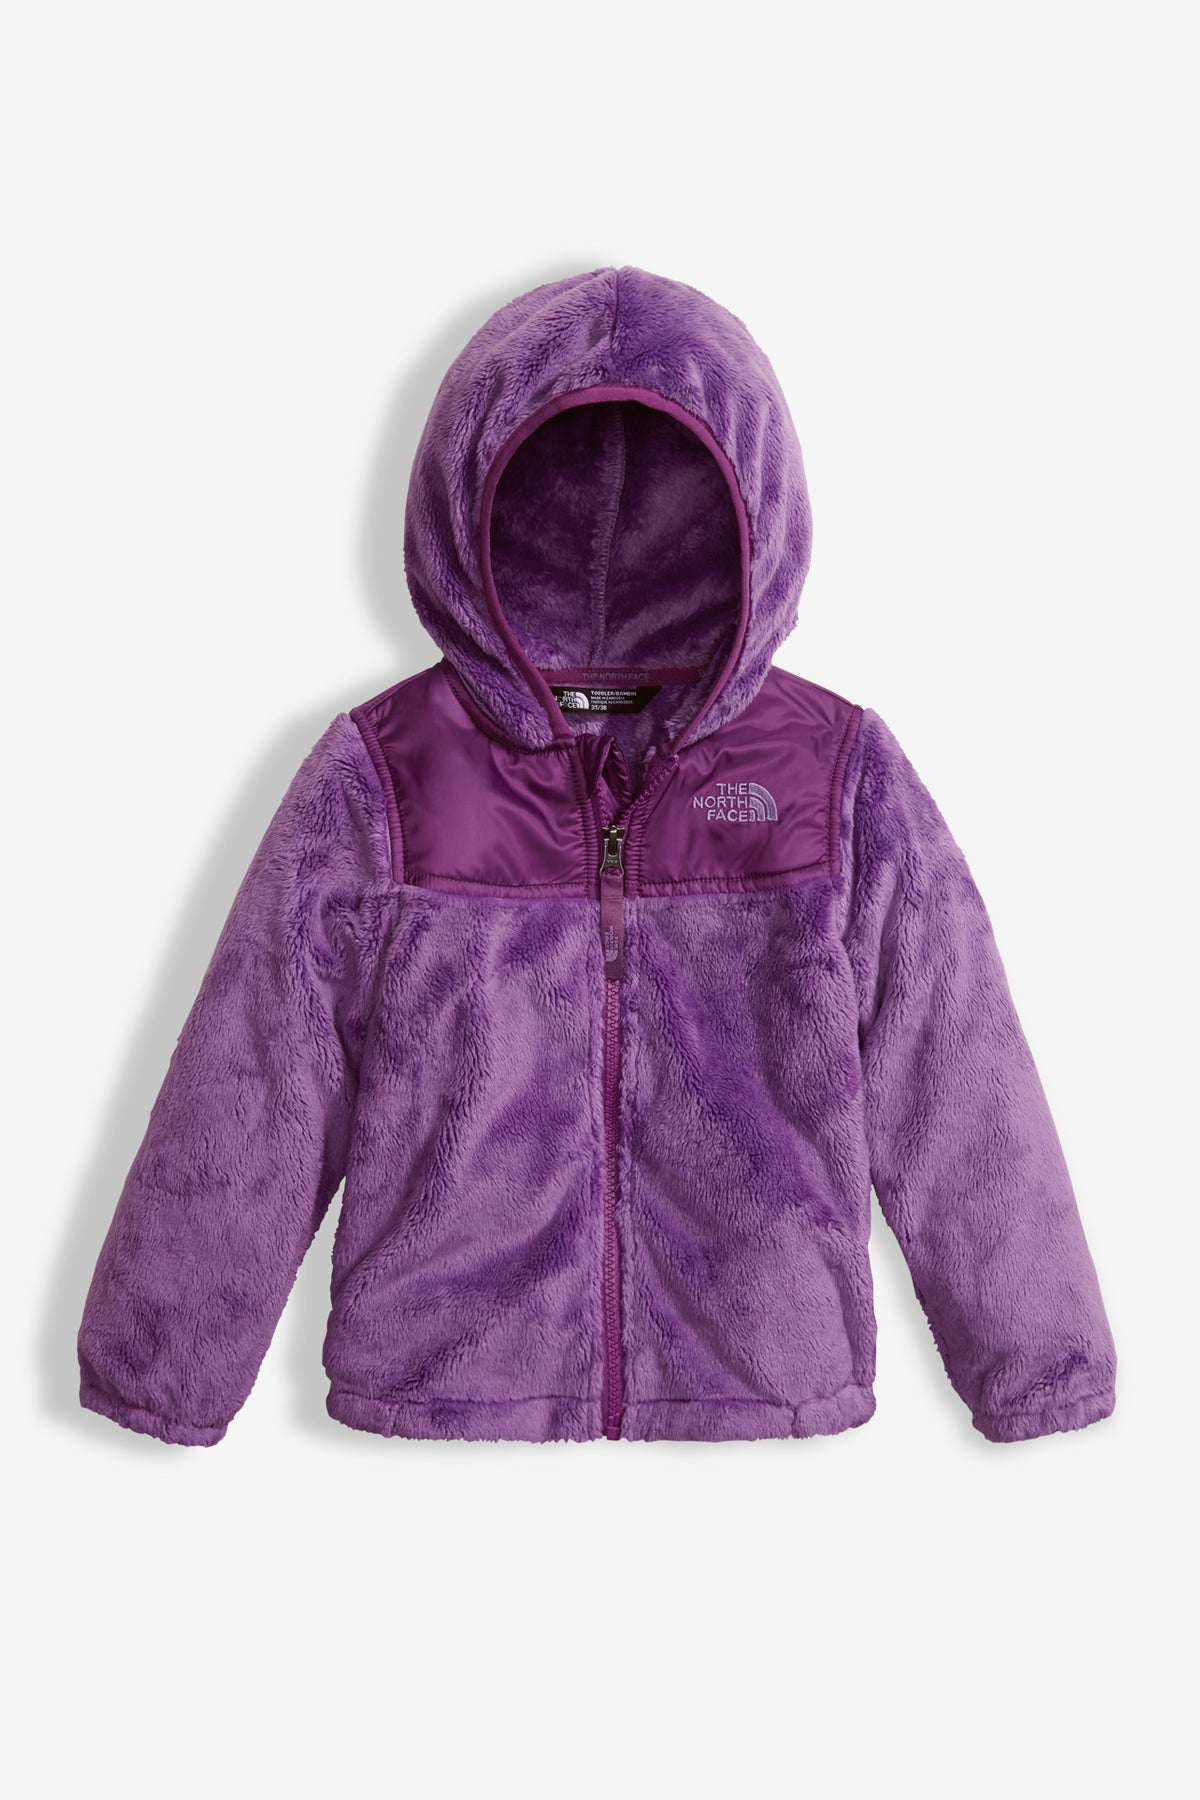 The North Face Little Girls Oso Hoodie - Mini Ruby ec4cd7ec6